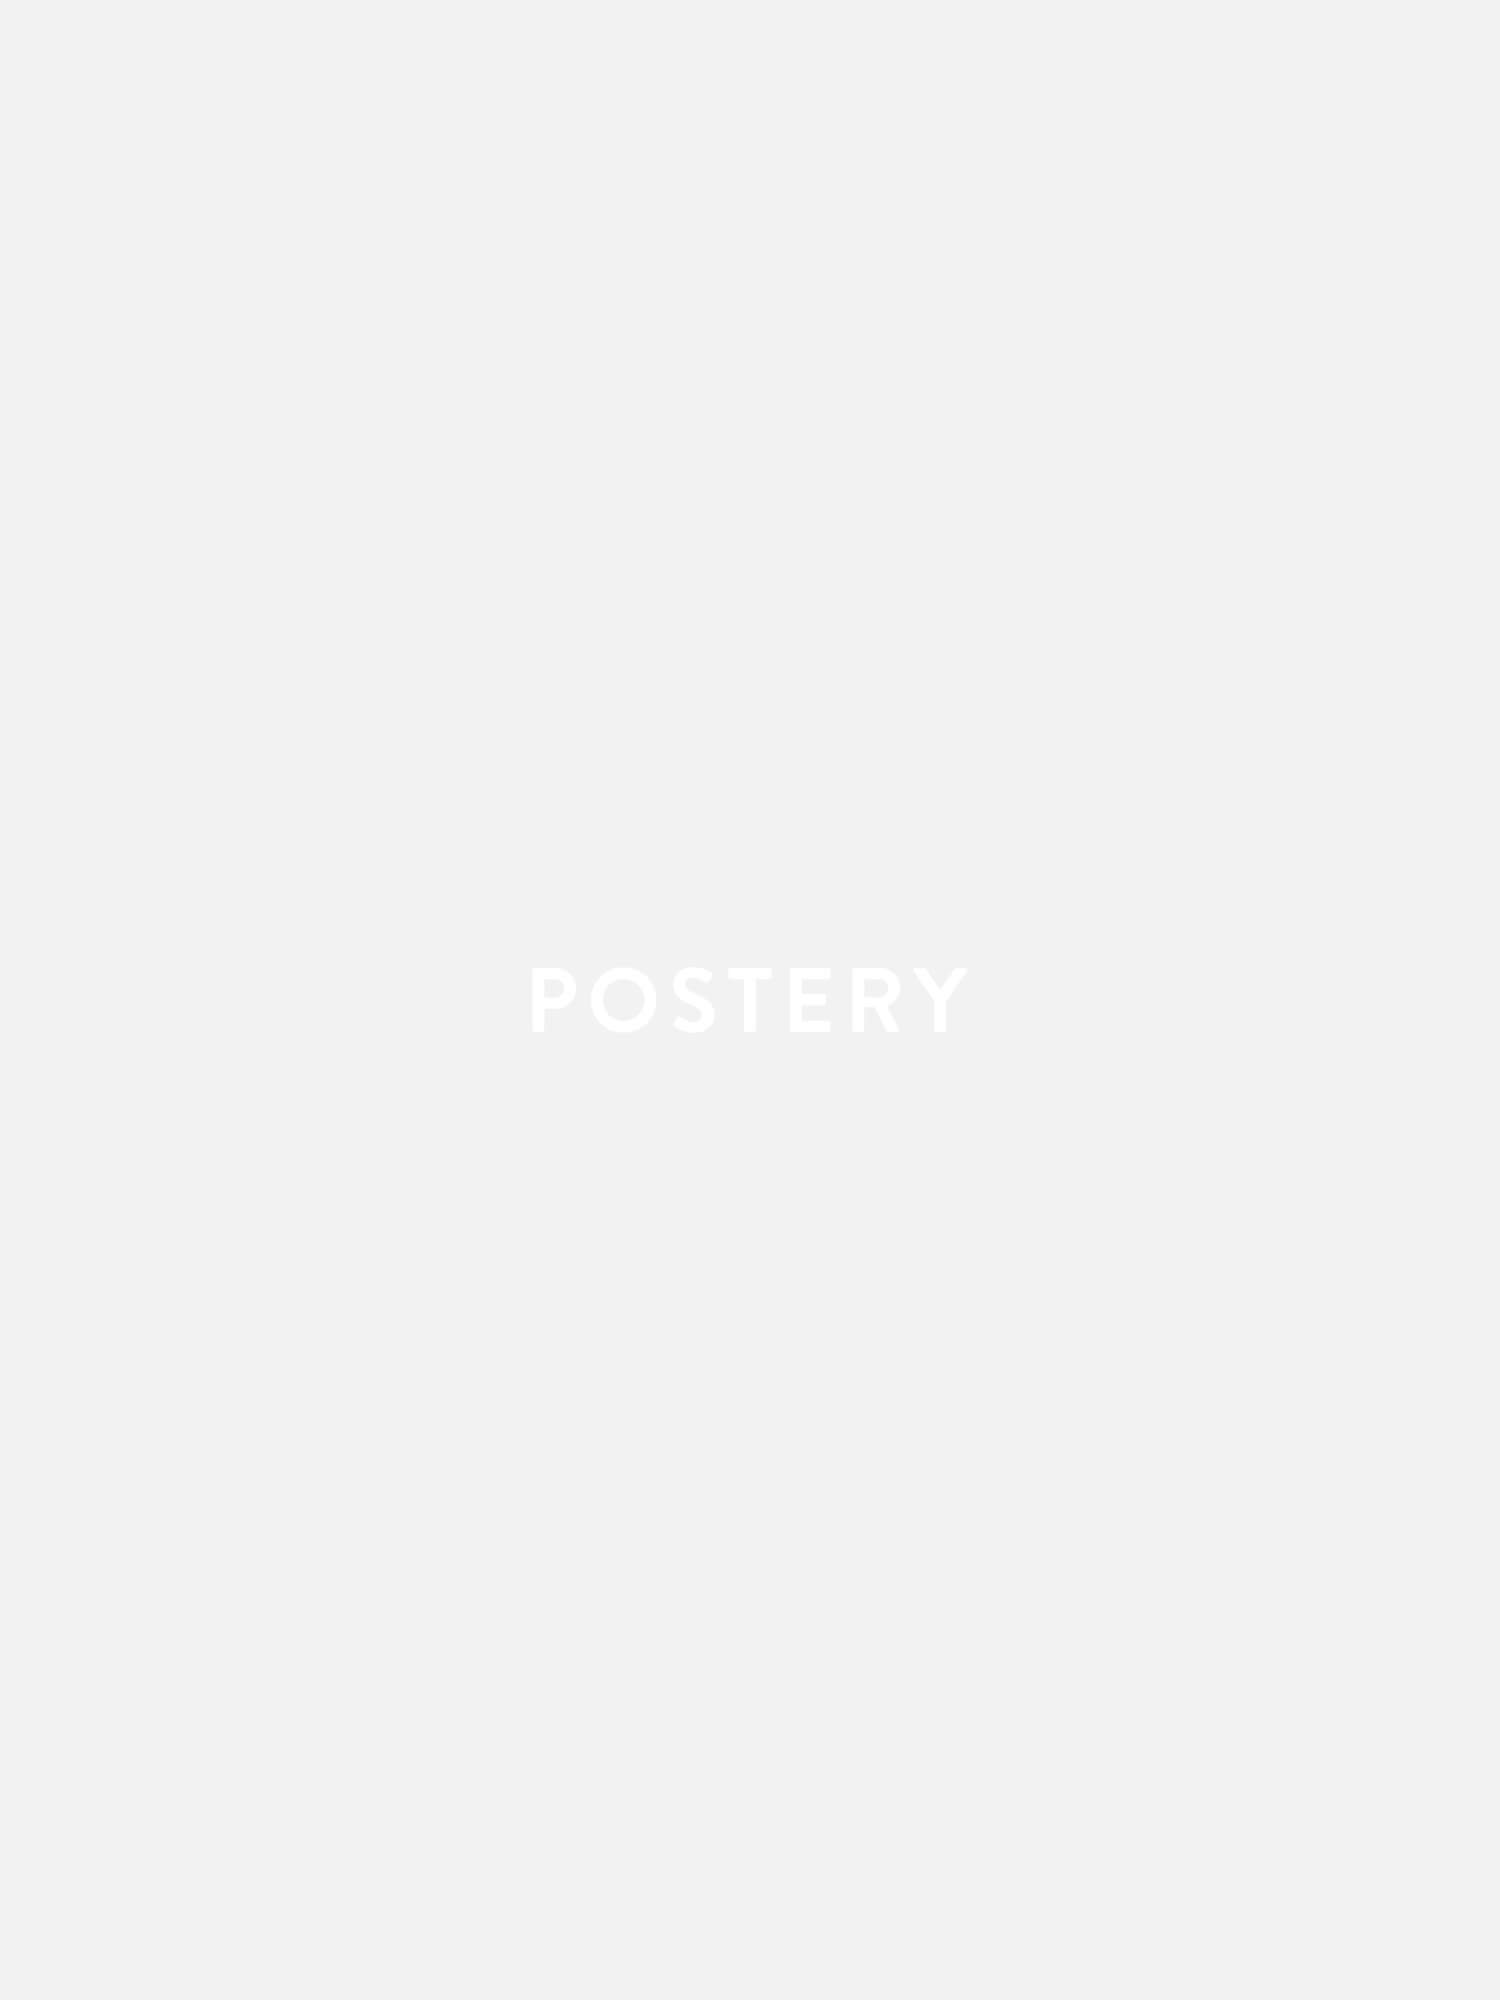 Black Champagne Fountain Poster